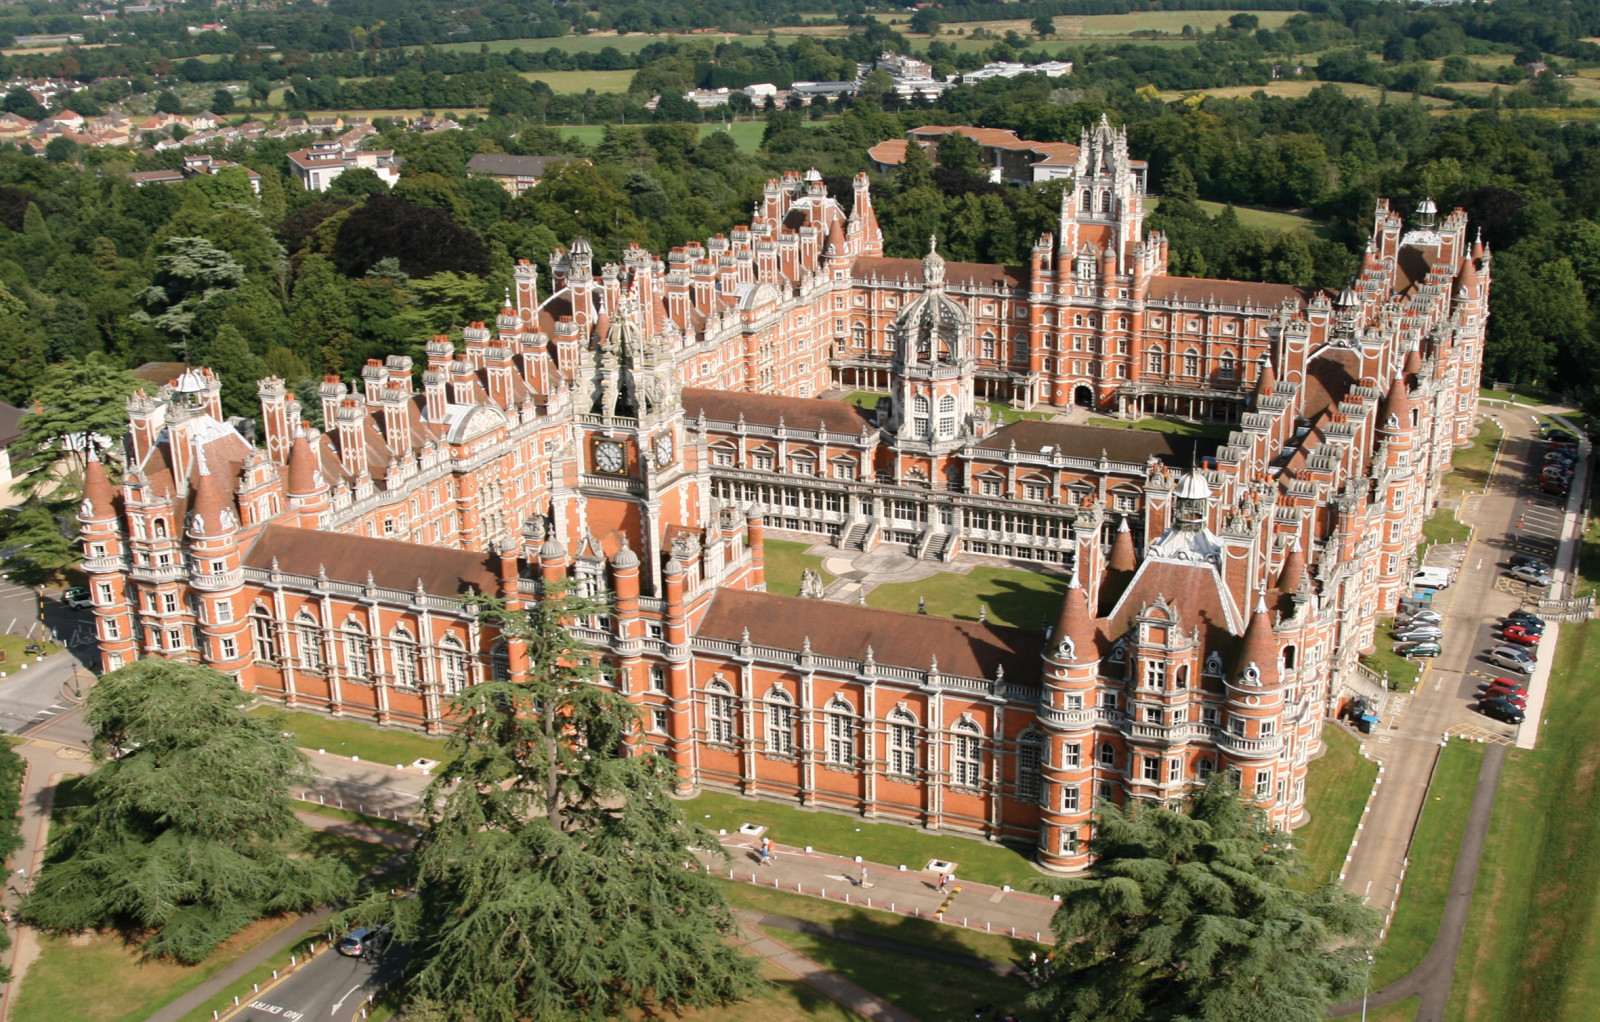 Founders_Building_Josip_Martincic_Royal_Holloway_UK_Engleska_Velika_Britanija